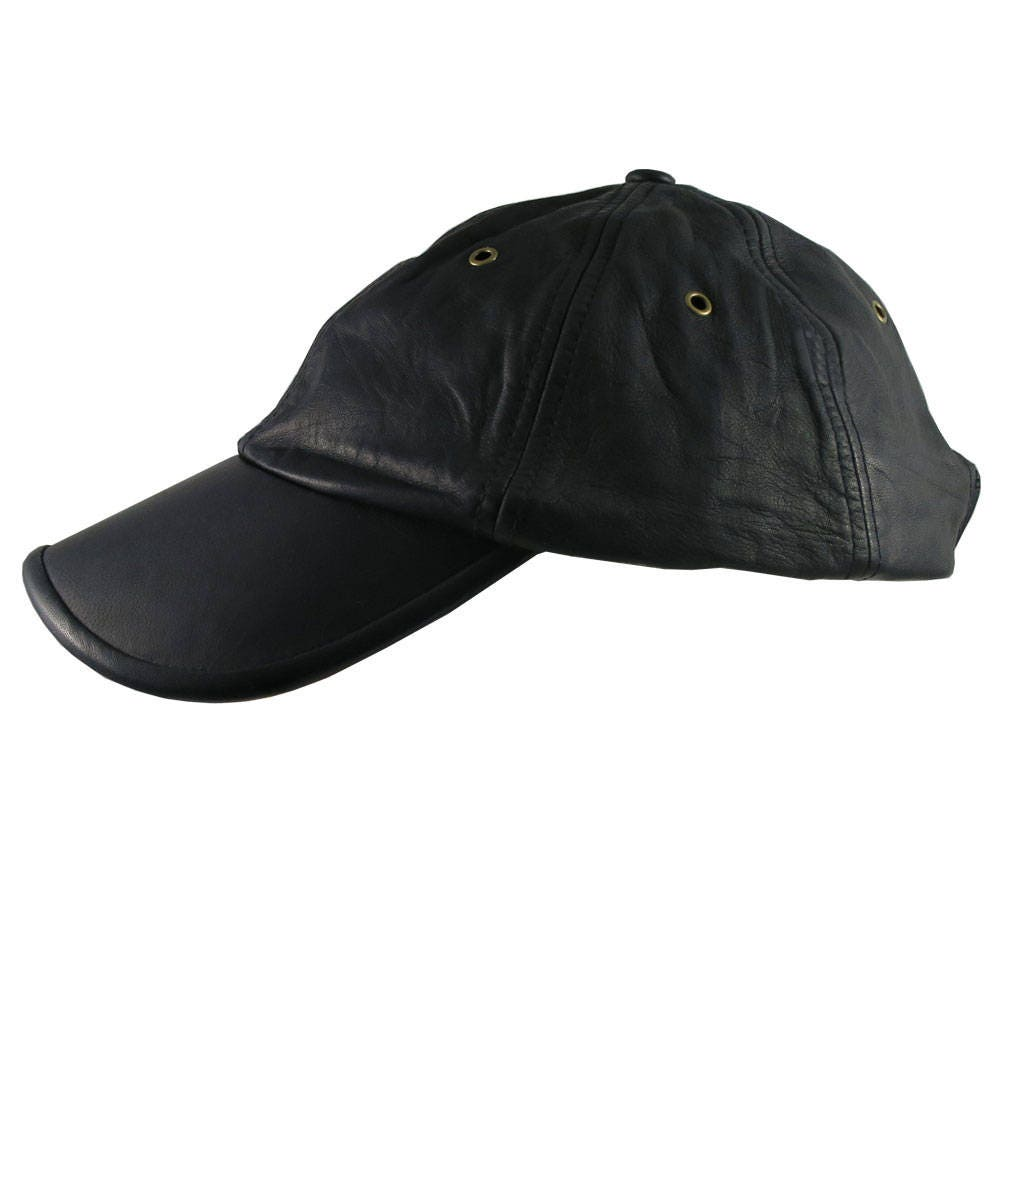 eb5adb6be94 Genuine Black Leather Low Profile Adjustable Fashion Baseball Cap ...